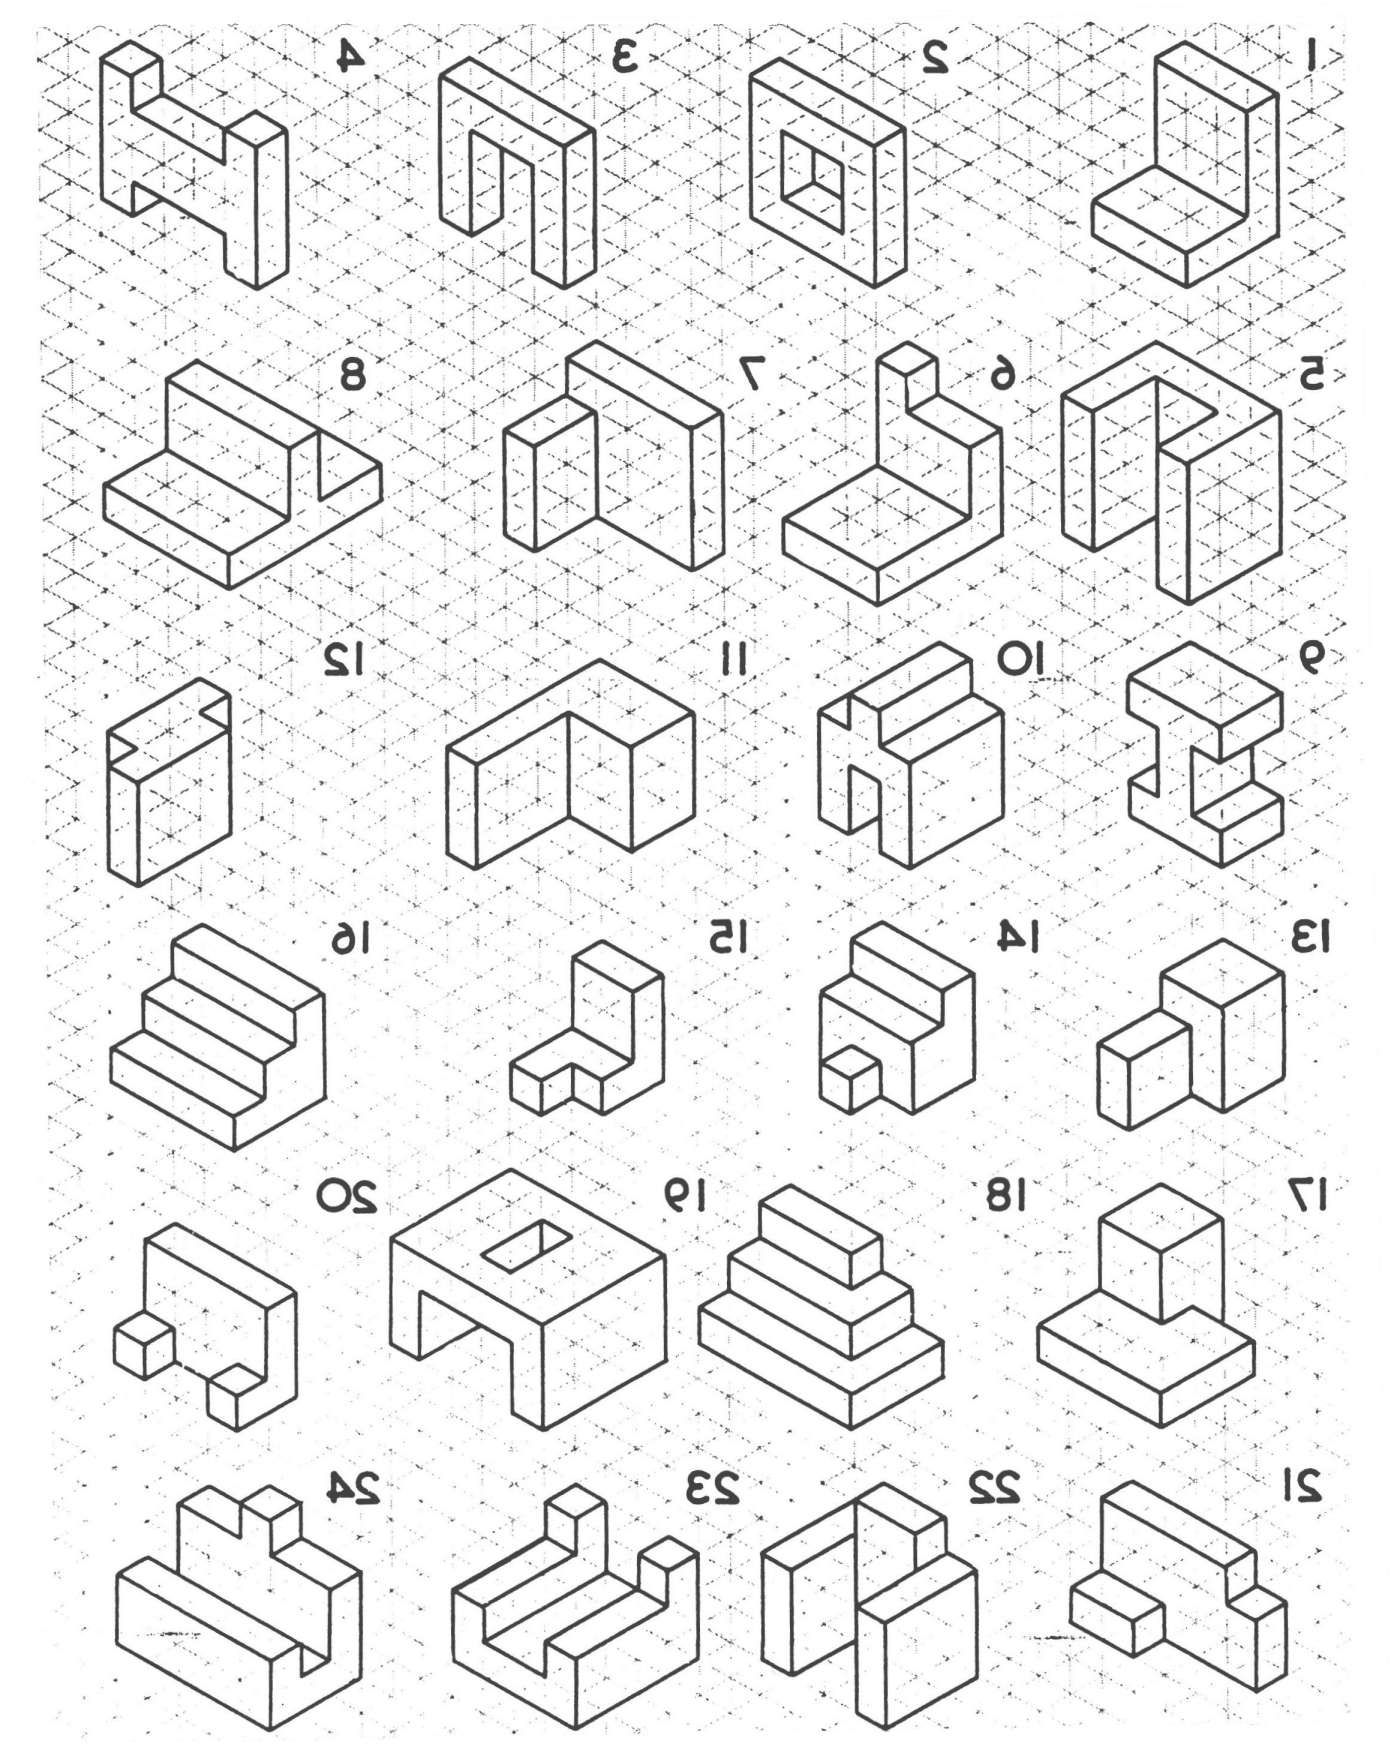 Isometric Drawings Worksheets   Printable Worksheets and Activities for  Teachers [ 1747 x 1391 Pixel ]